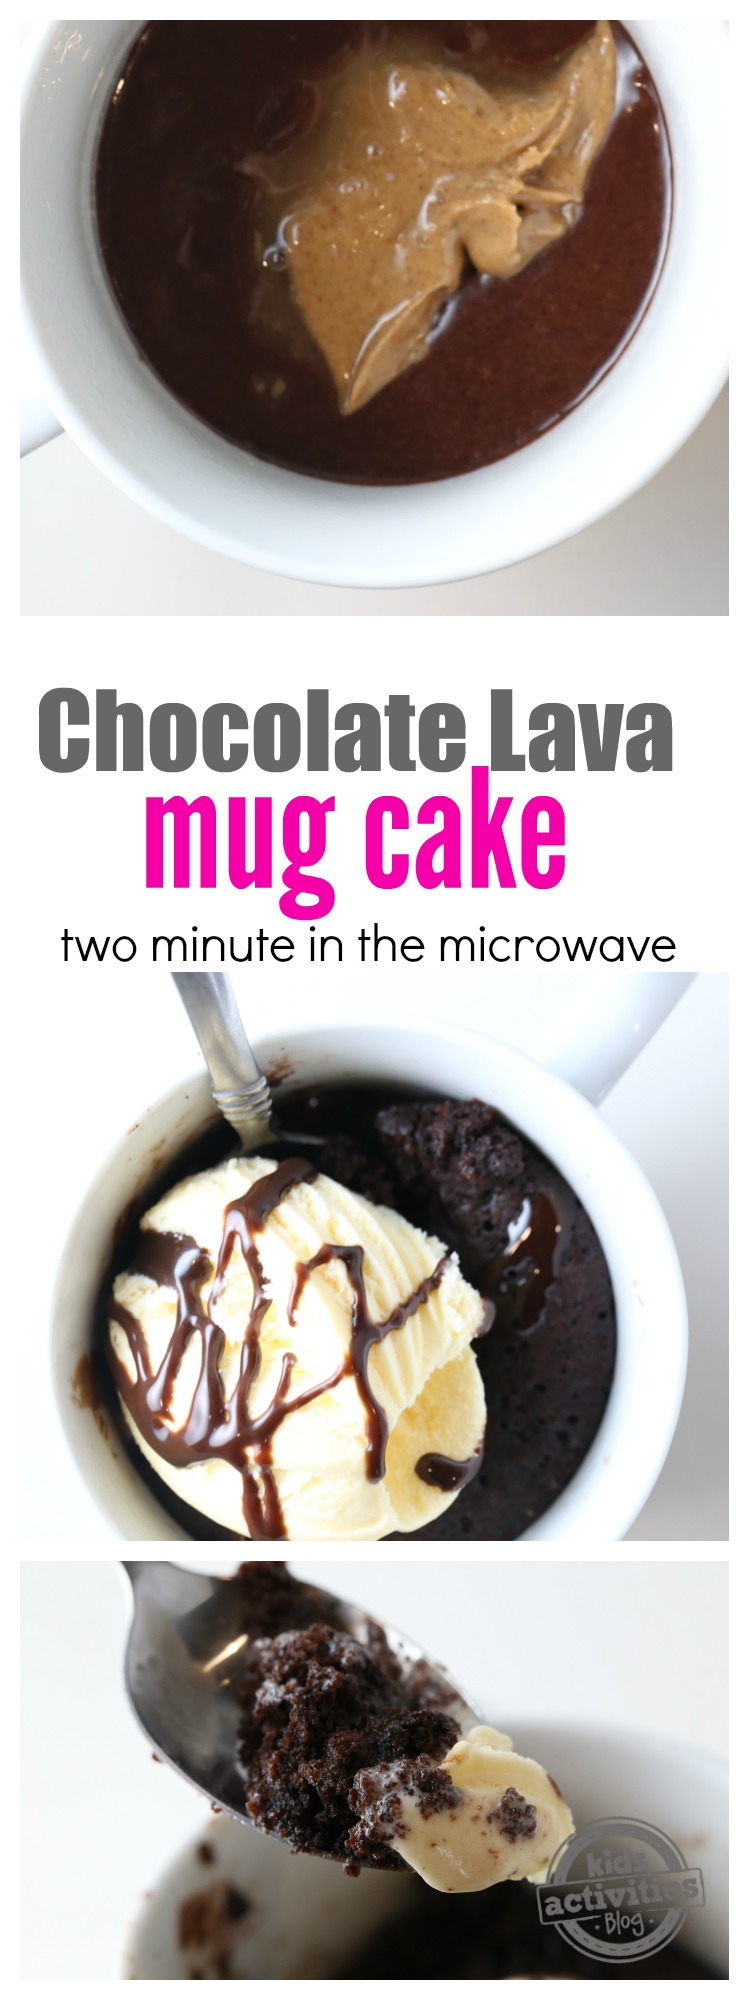 Delicious Chocolate Lava Mug Cake